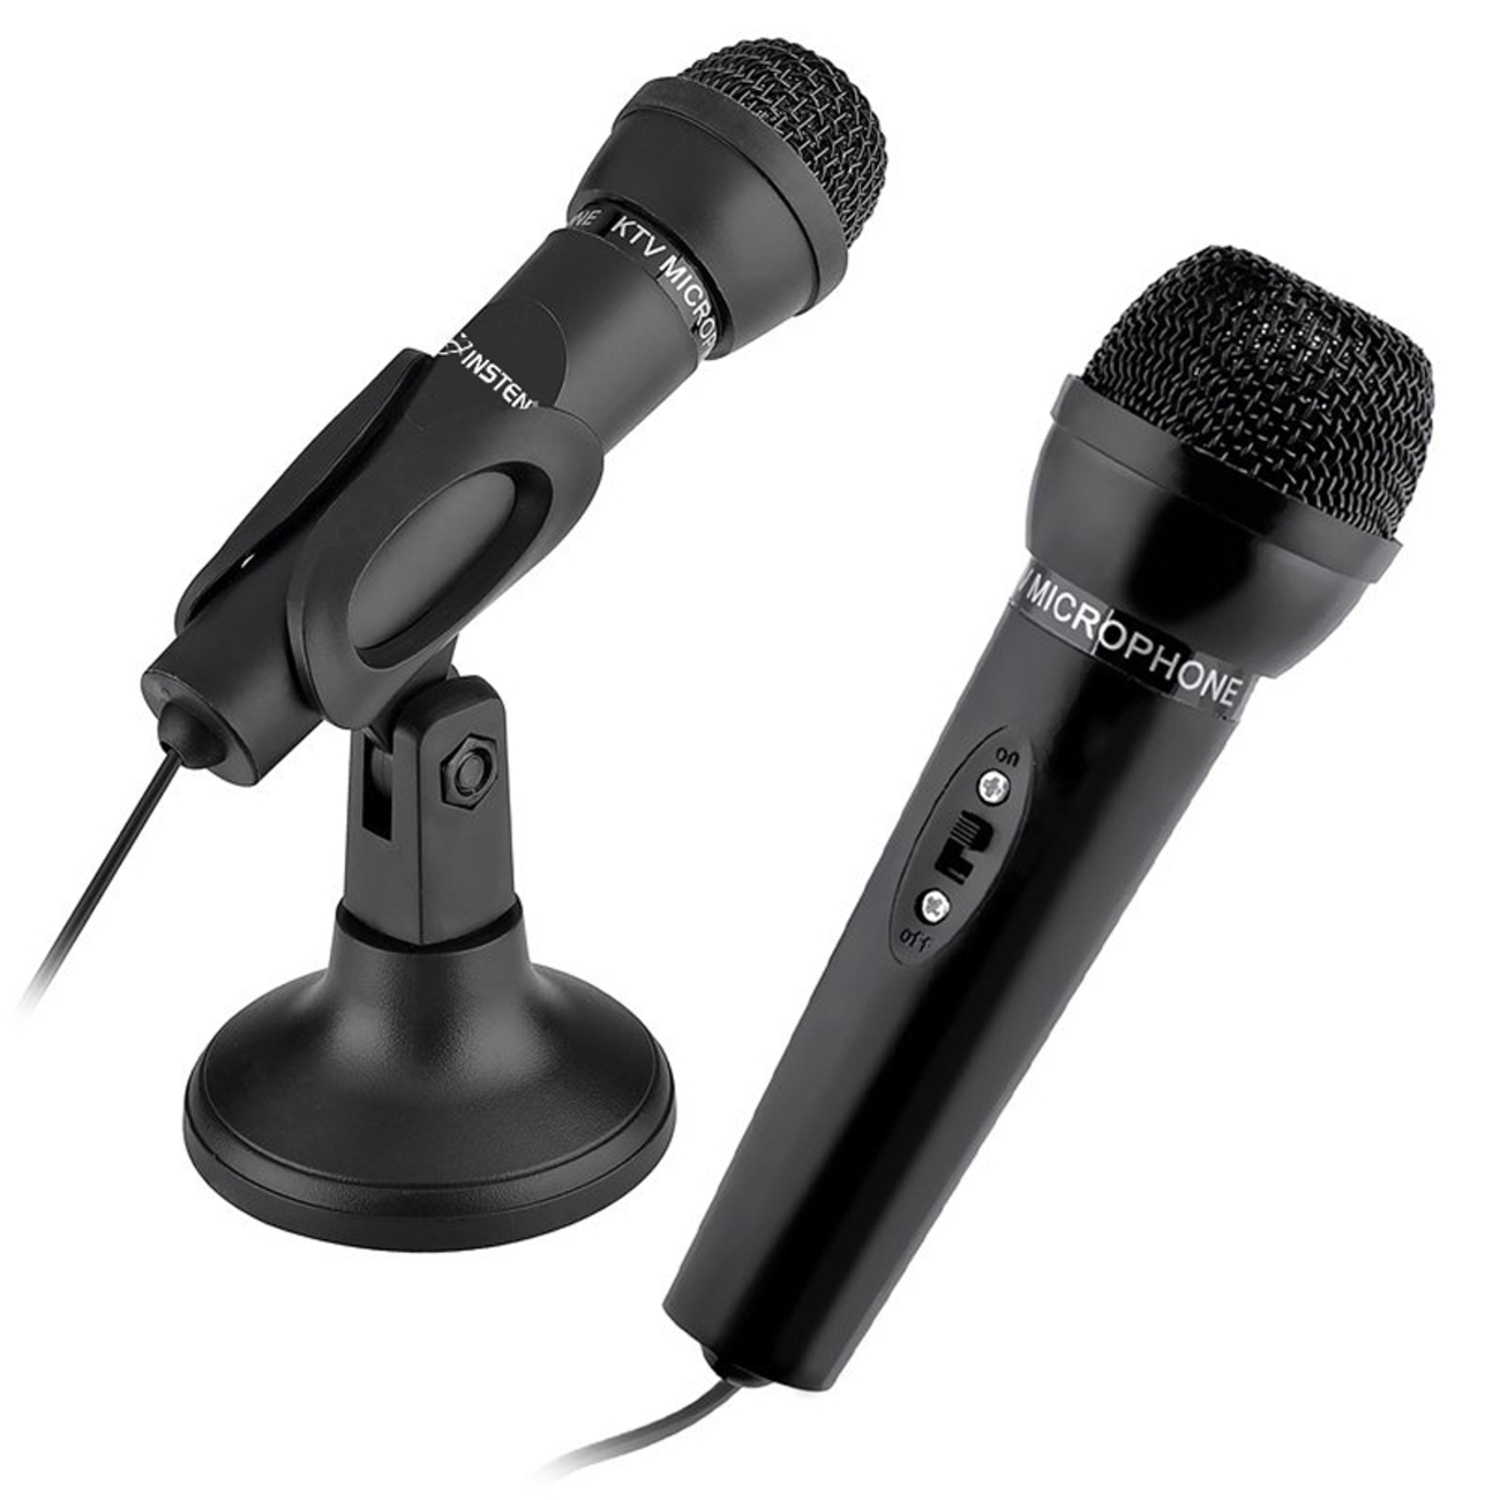 Insten New 3.5mm Audio Plug Mic Stand Microphone Studio for PC Laptop Notebook Skype Meeting Speech